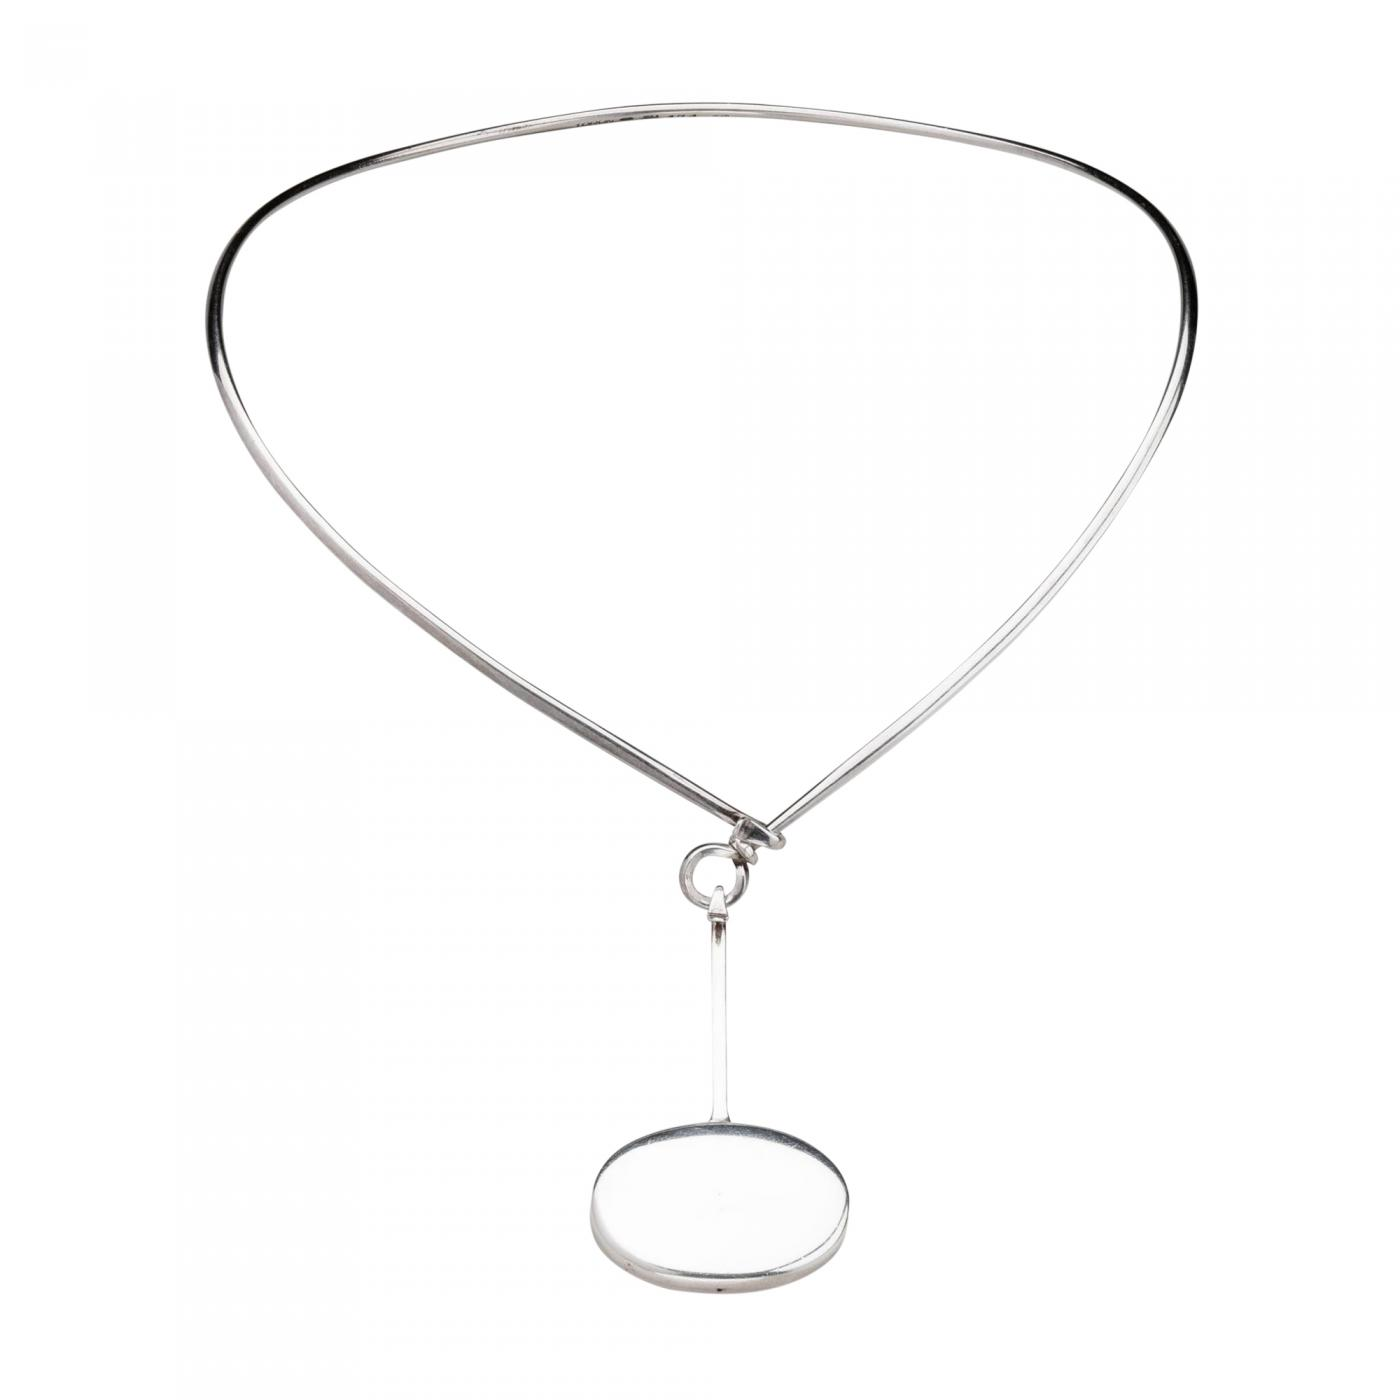 Georg jensen georg jensen torun necklace with sterling drop pendant listings jewelry necklaces pendants drop pendant aloadofball Image collections